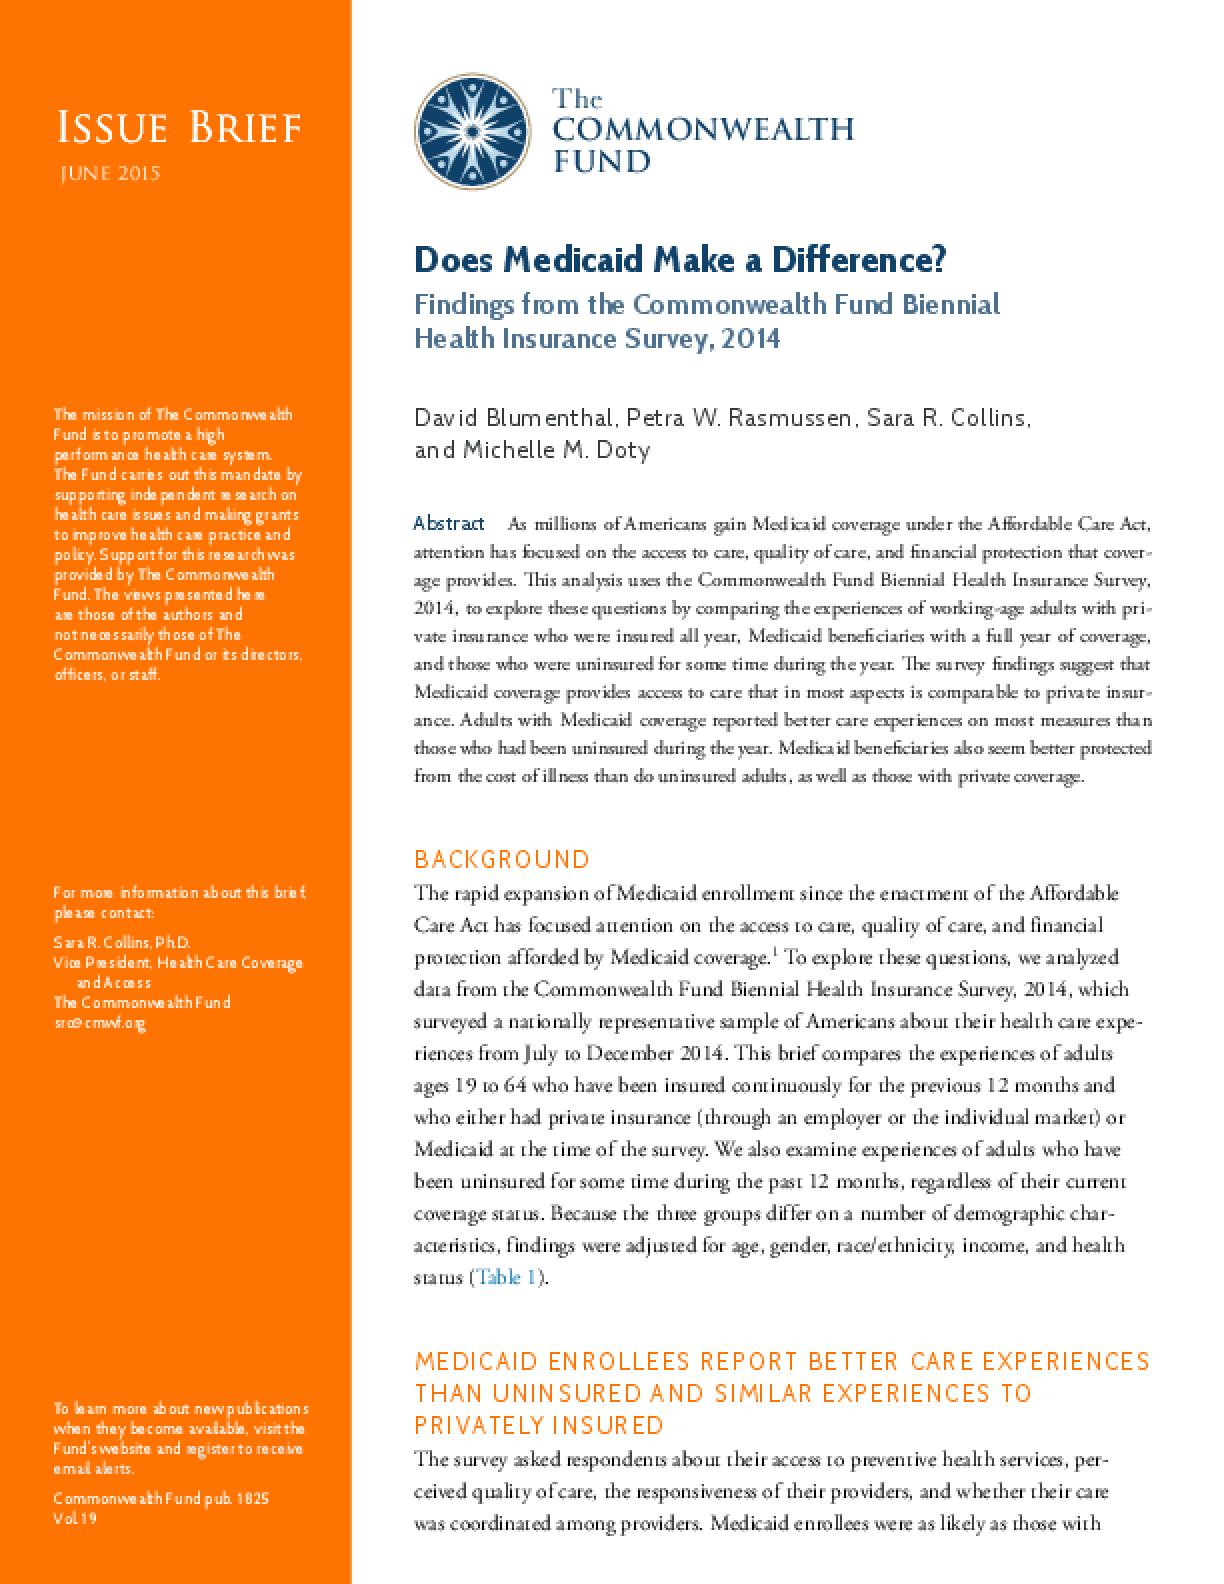 Does Medicaid Make a Difference? Findings from the Commonwealth Fund Biennial Health Insurance Survey, 2014